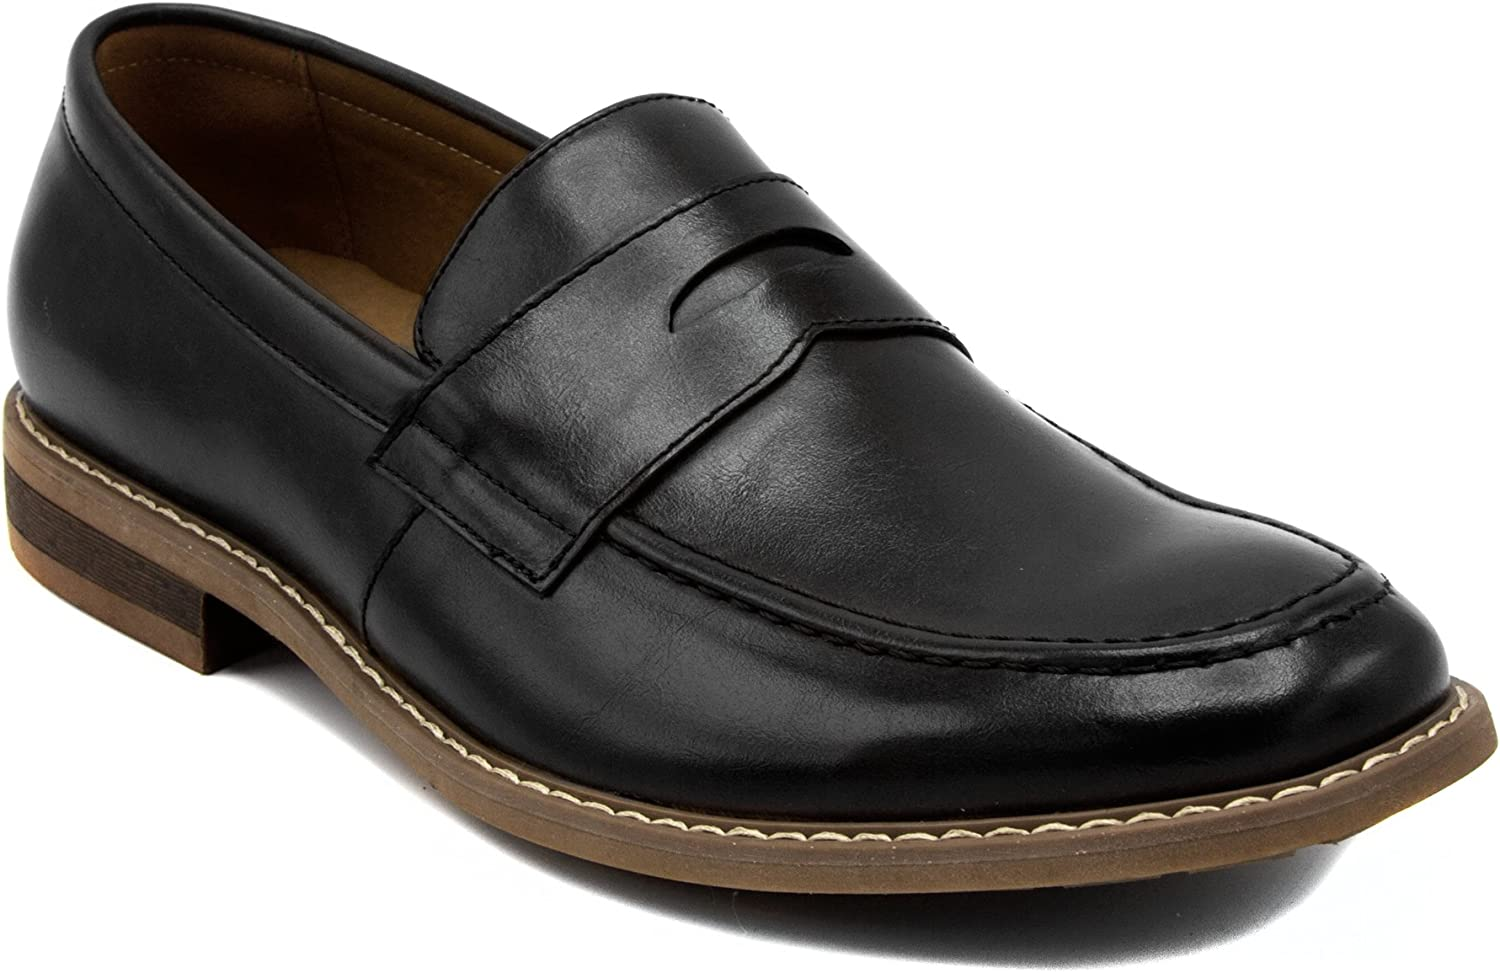 Nautica Men's Dress shoes, Lace Up Oxford, Slip On Moc Toe Loafer-Elias-Black Smooth-13